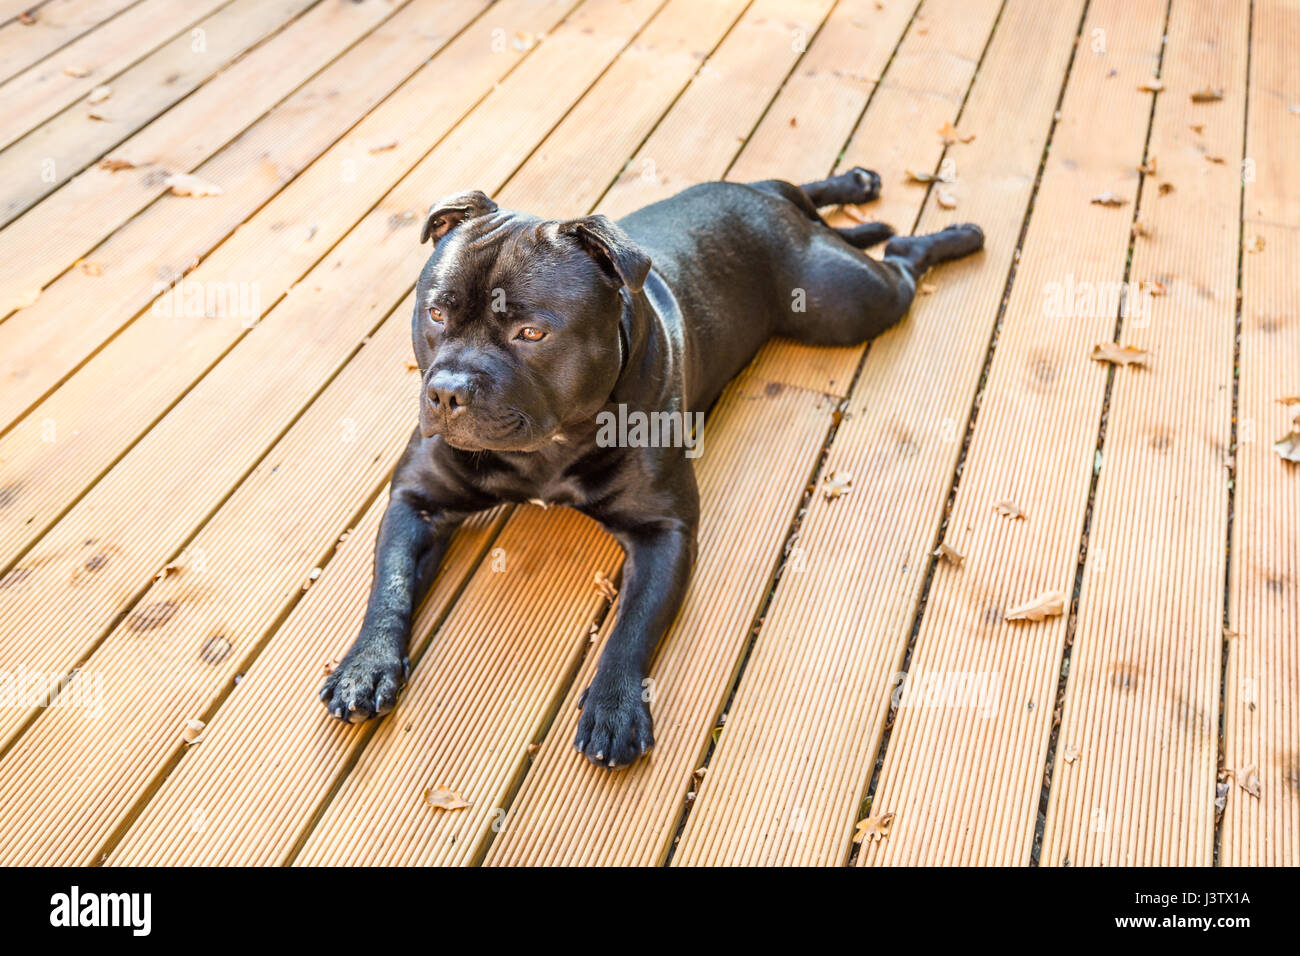 A handsome black Staffordshire Bull Terrier dog lying on wooden decking. his coat is shiny, he is not wearing a - Stock Image